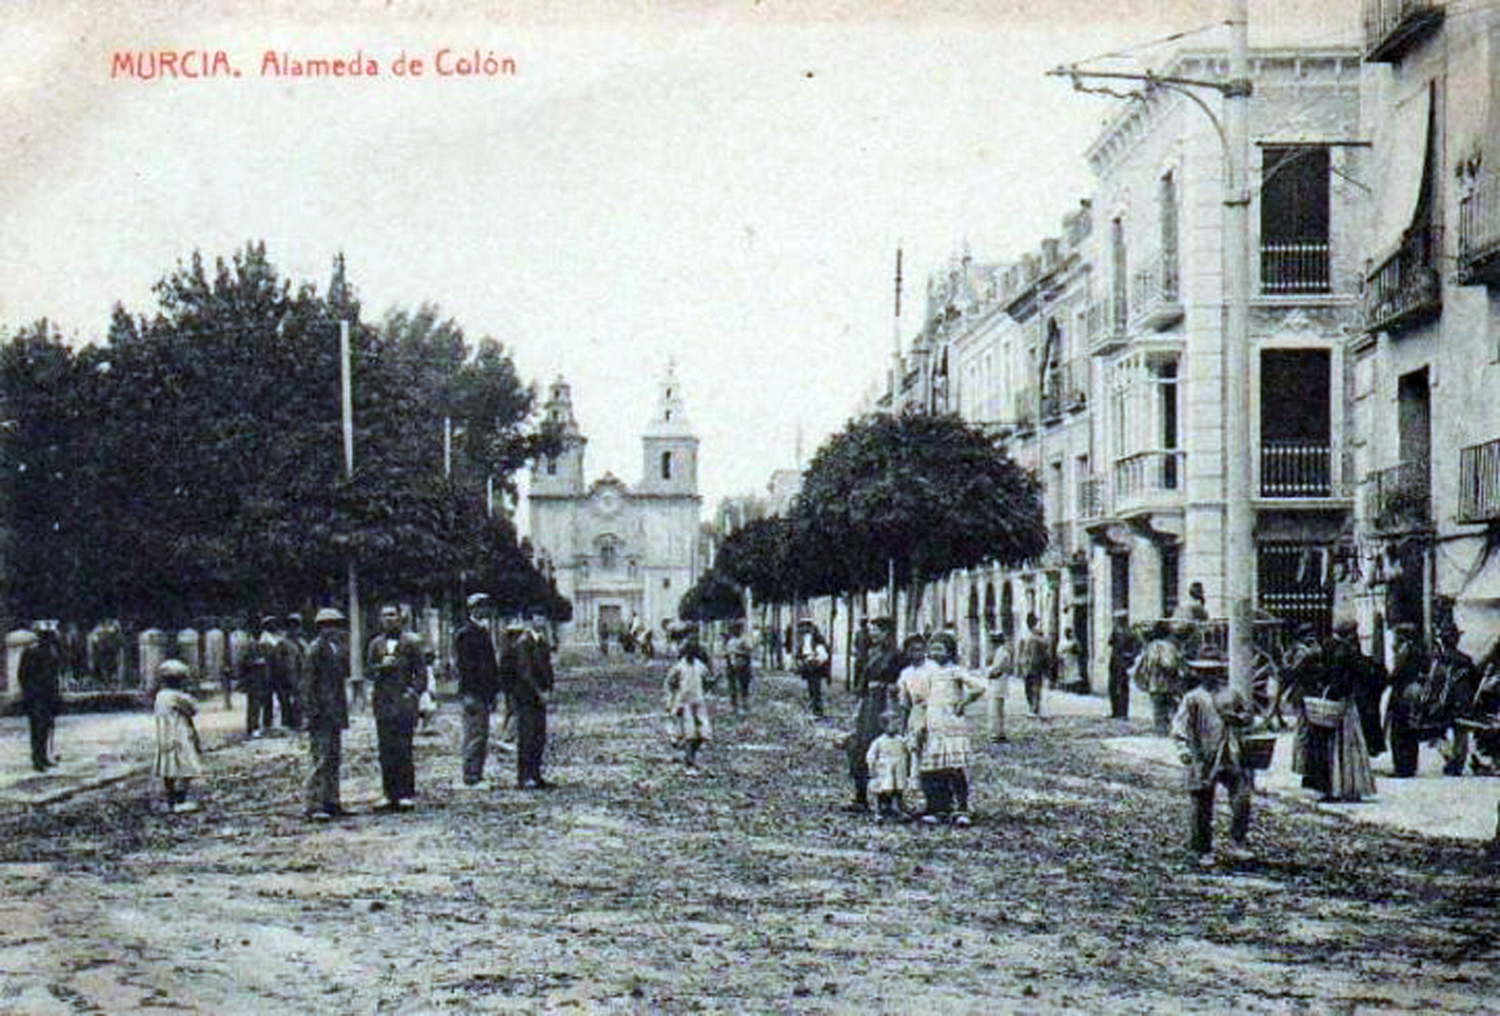 000 - alameda de colon-antigua